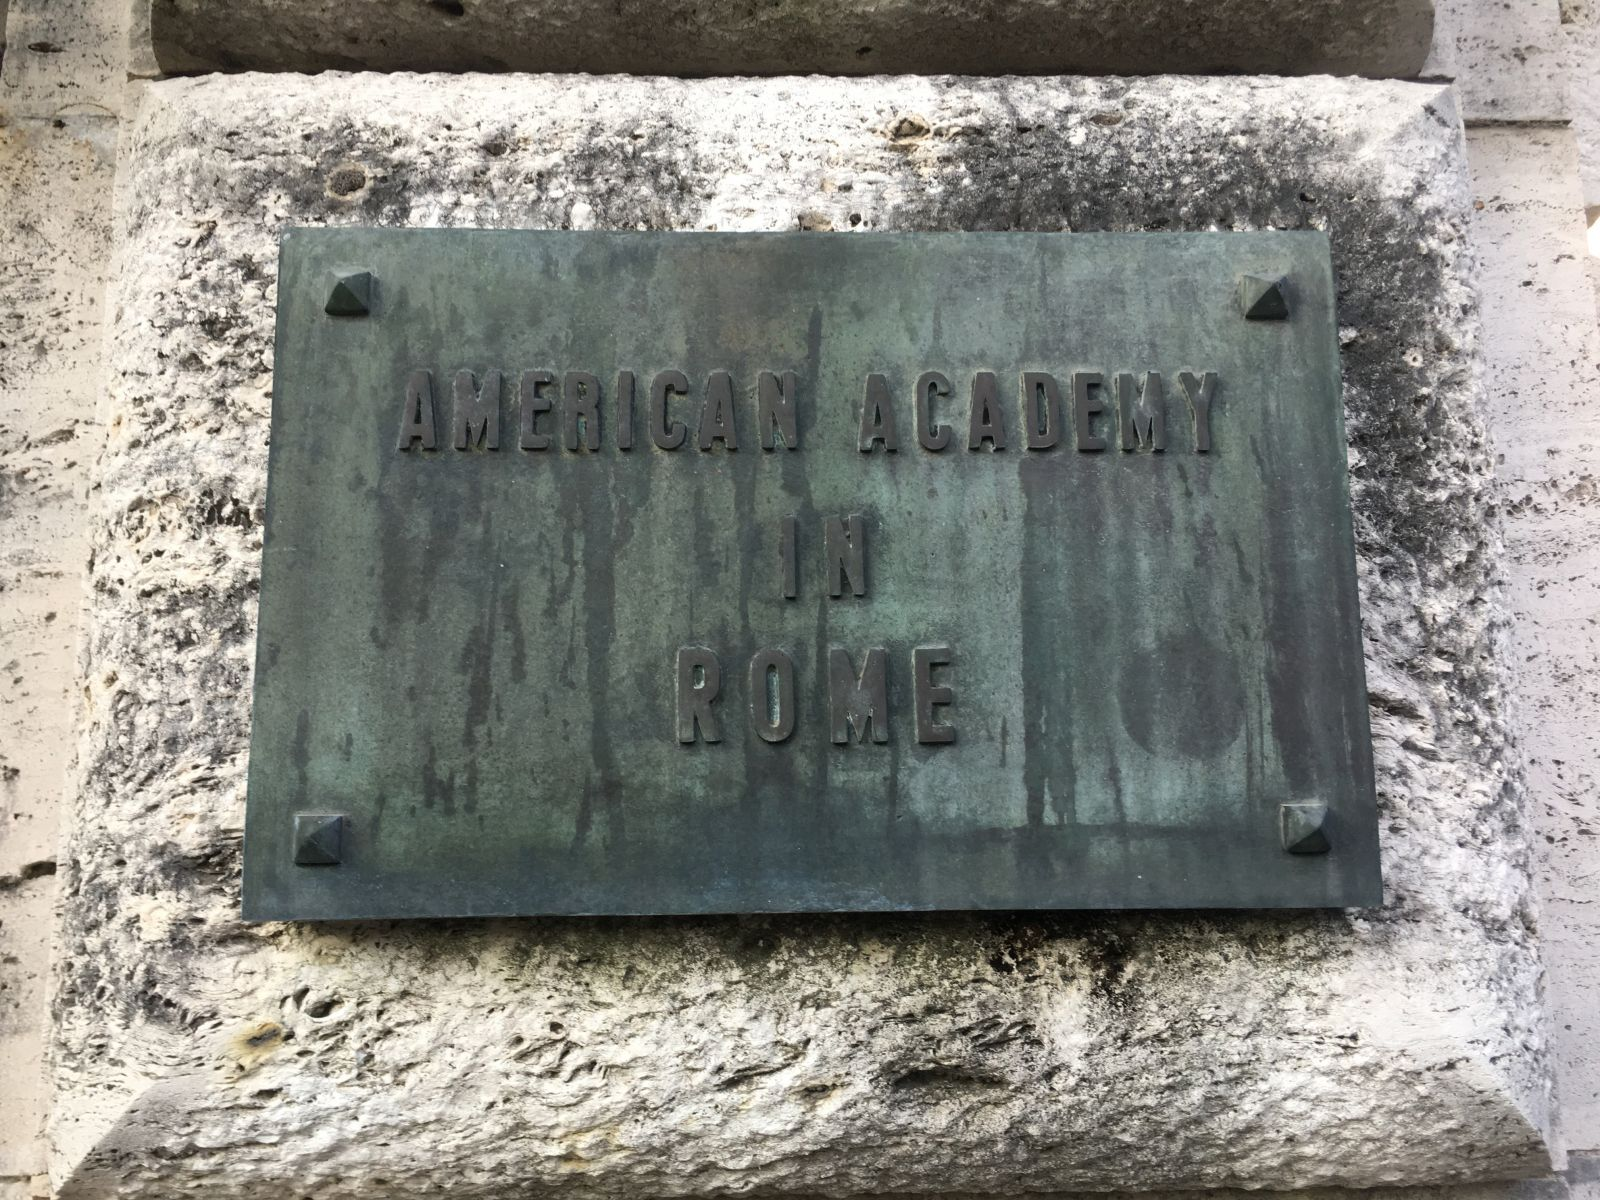 Plaque Outside the American Academy in Rome. Photo Courtesy of Catherine Bonesho.